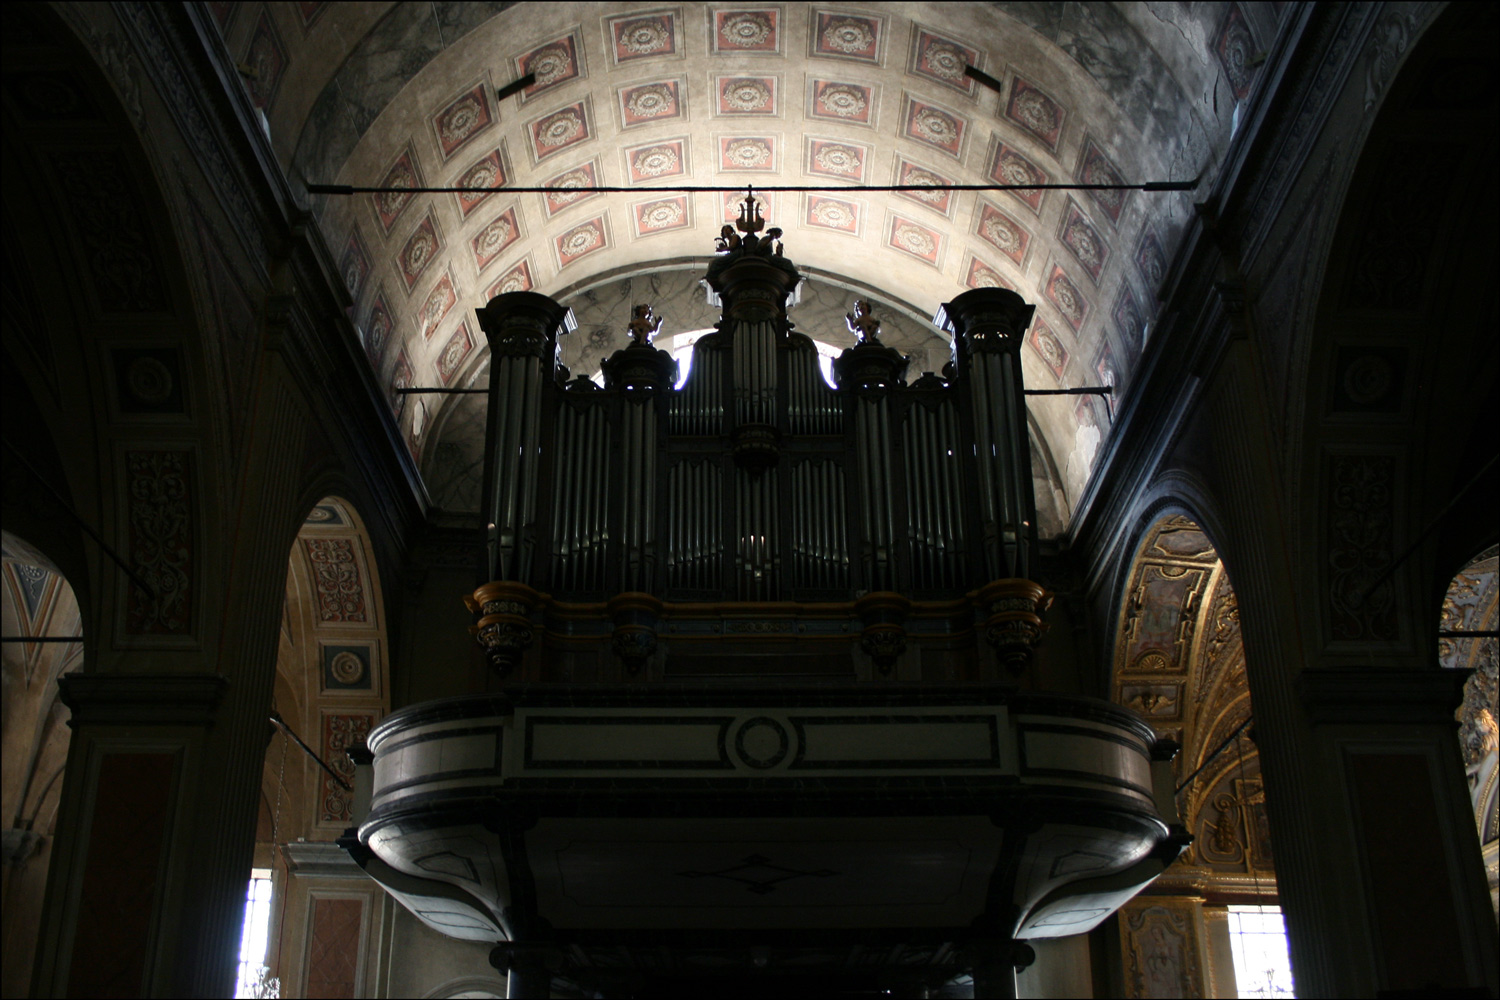 Organ Pipes in the Cathedral of the Assumption